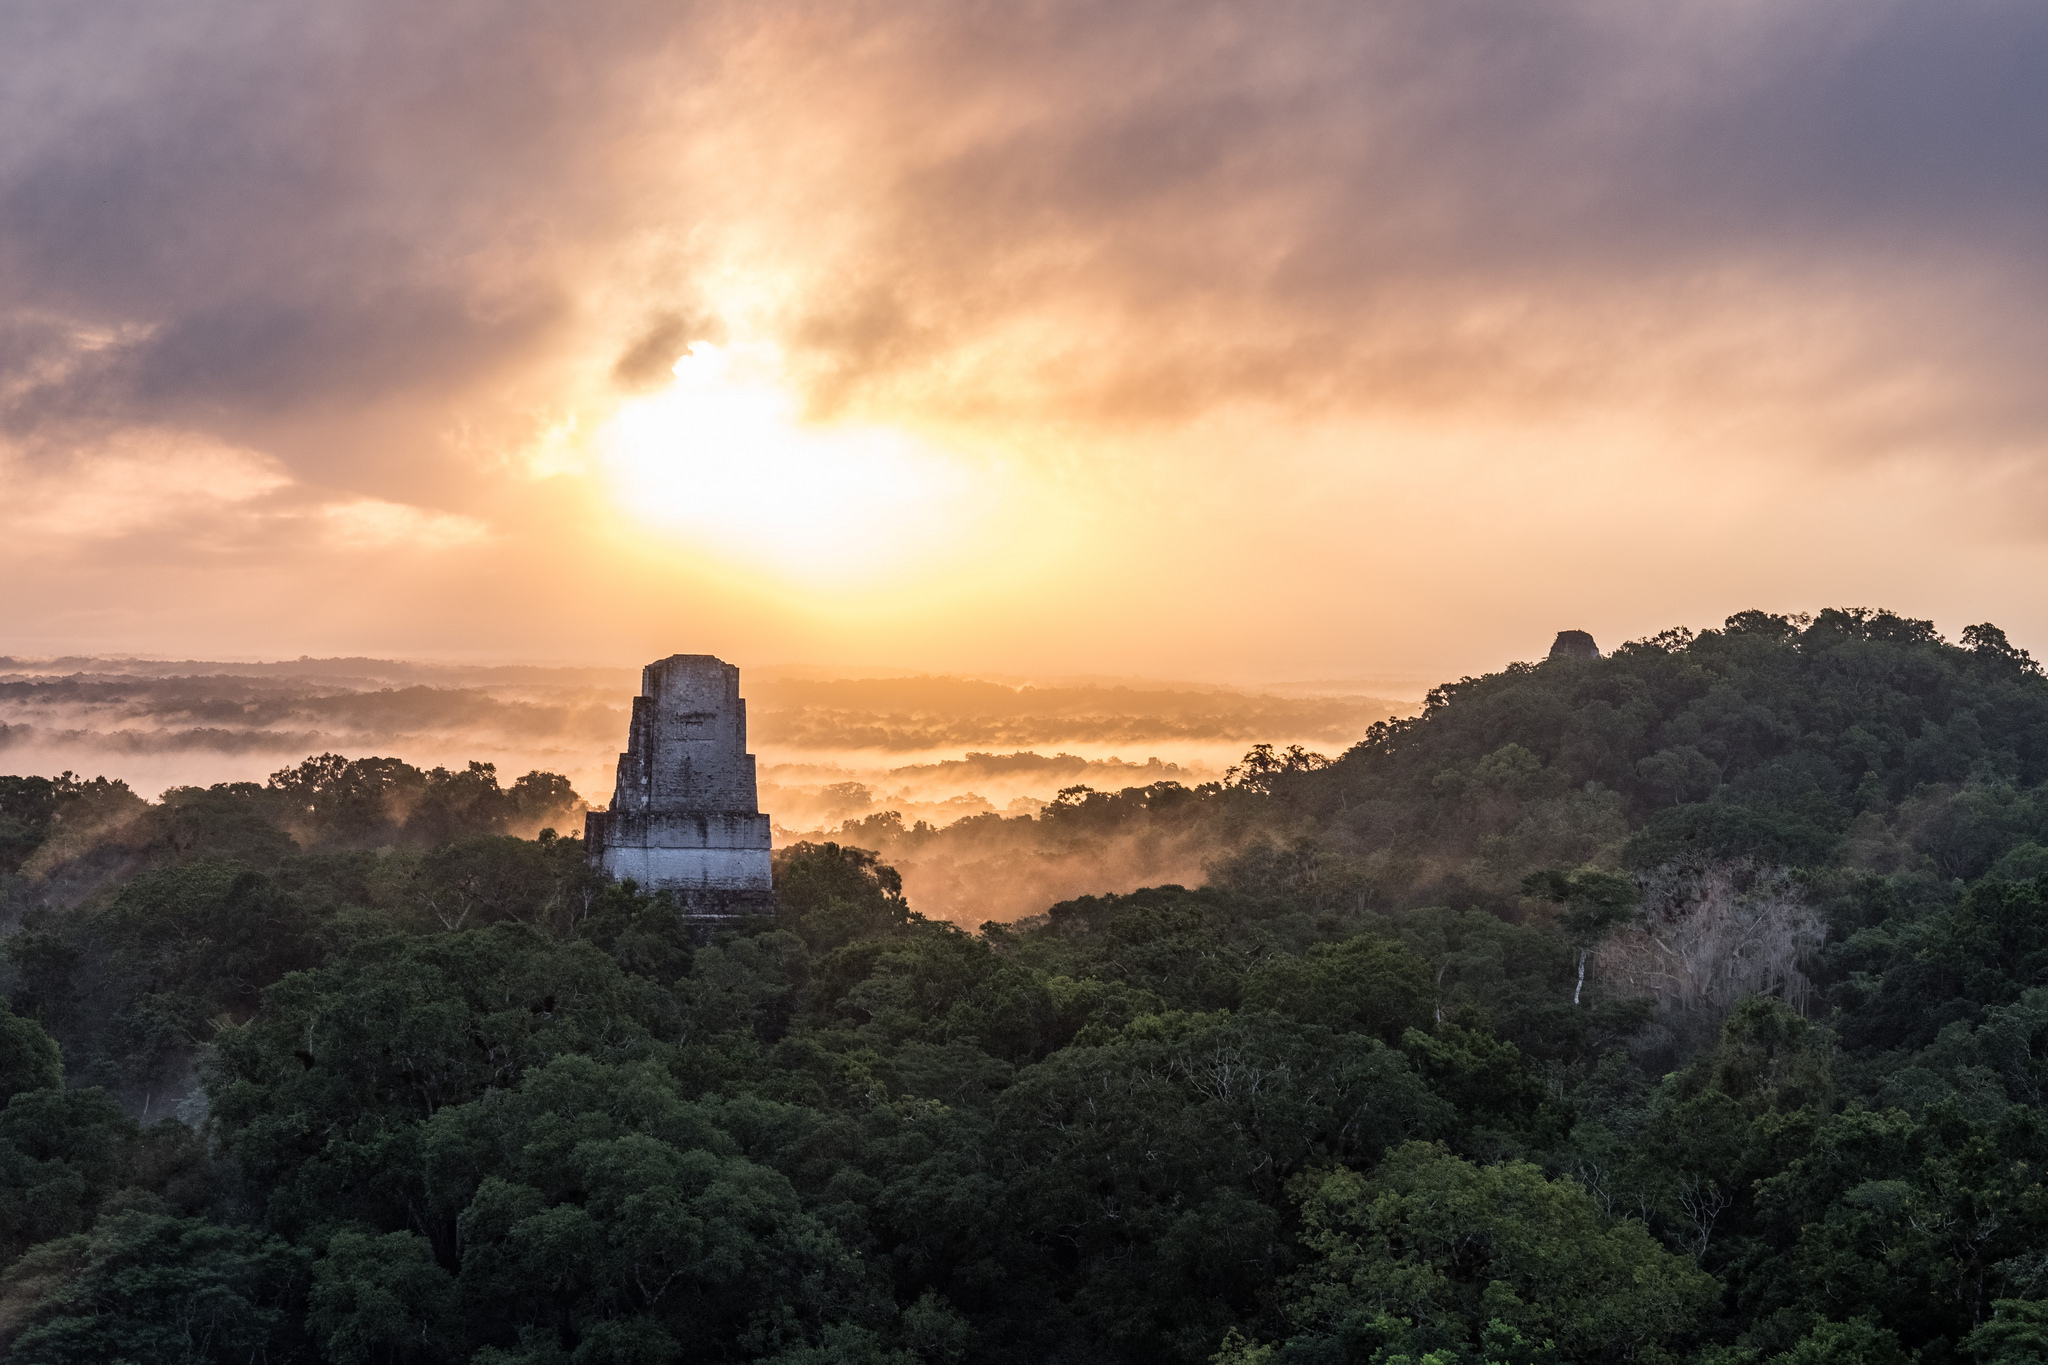 A panorama of a misty rainforest with a temple in the foreground